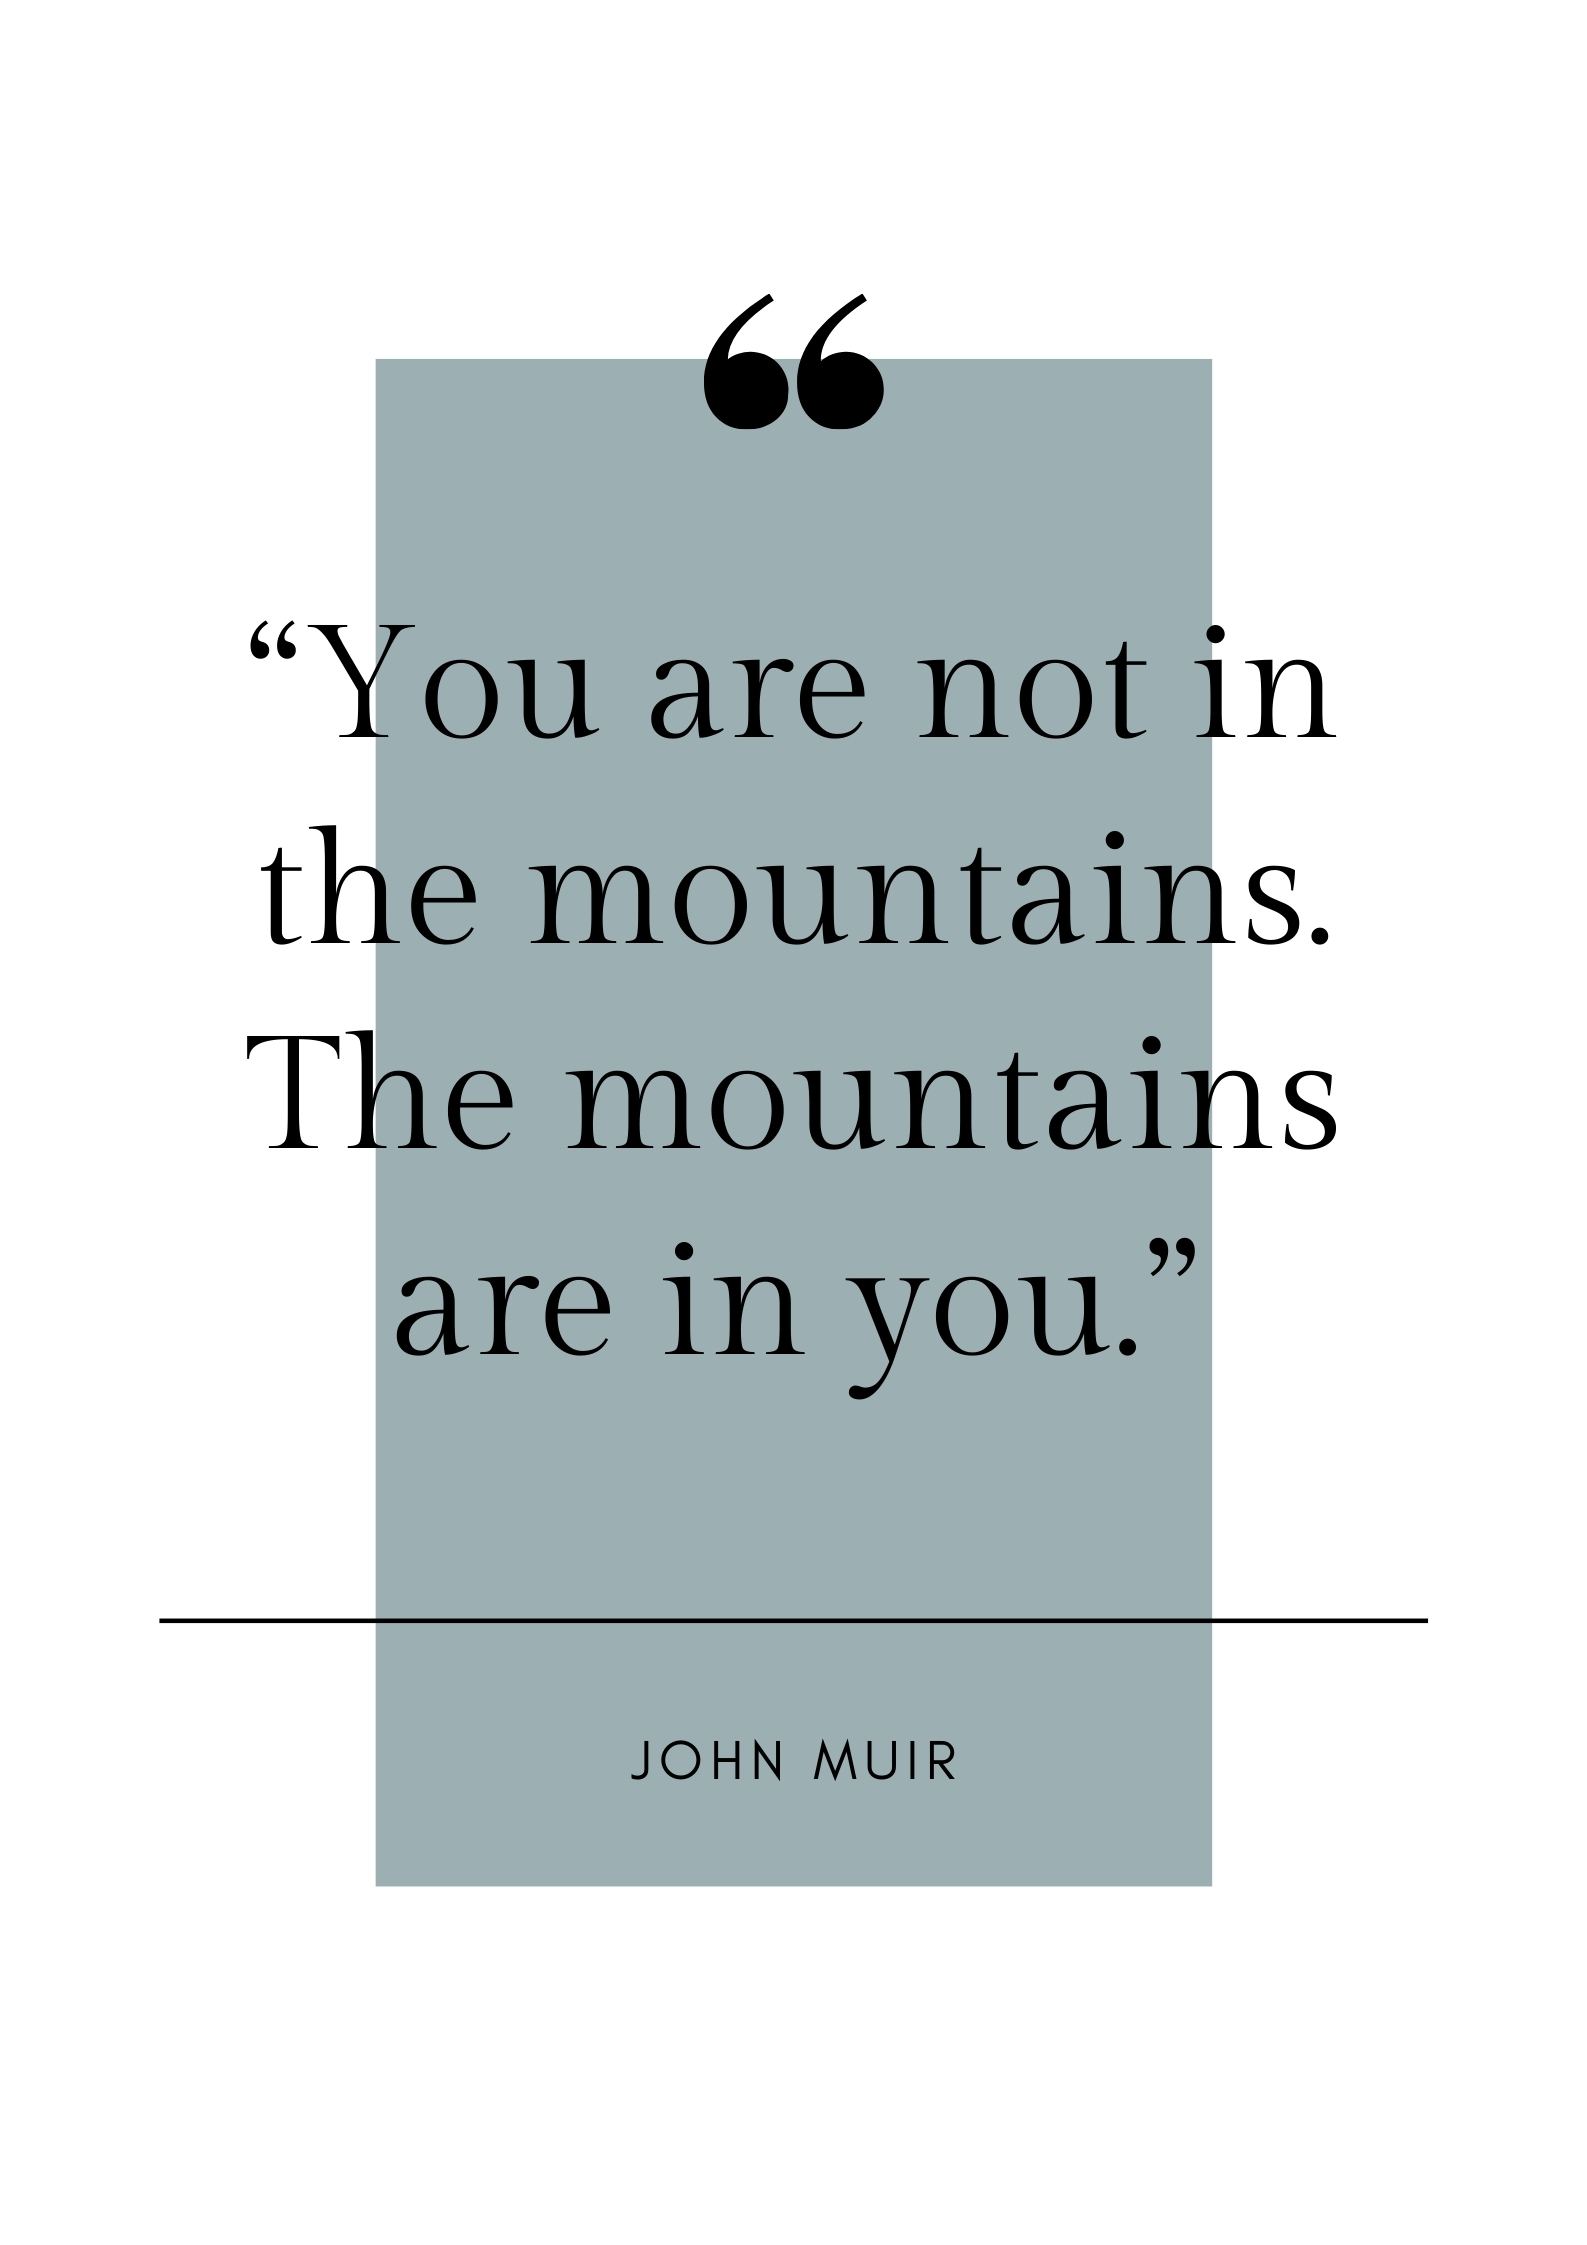 nature quote john muir